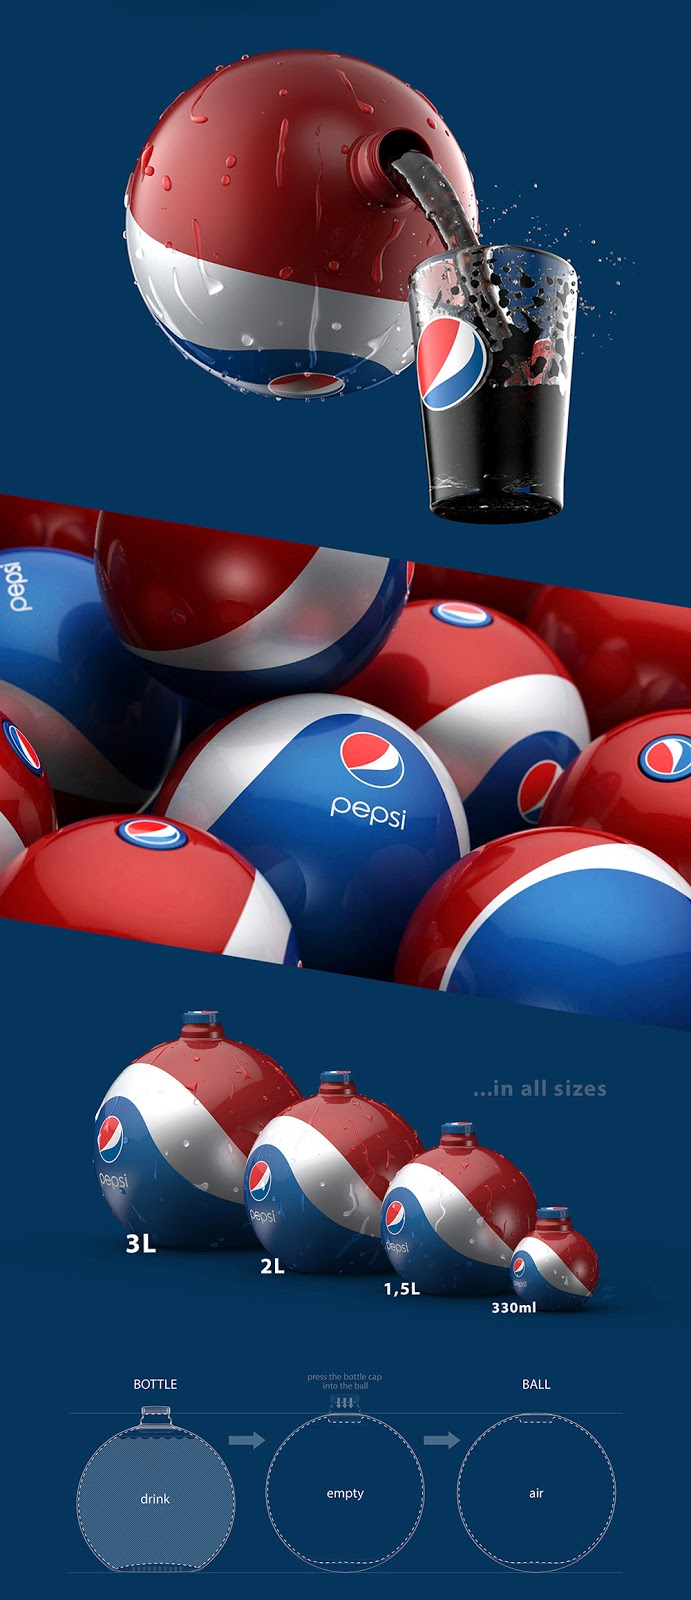 Pepsi-Rubber-Ball-Bottle-04